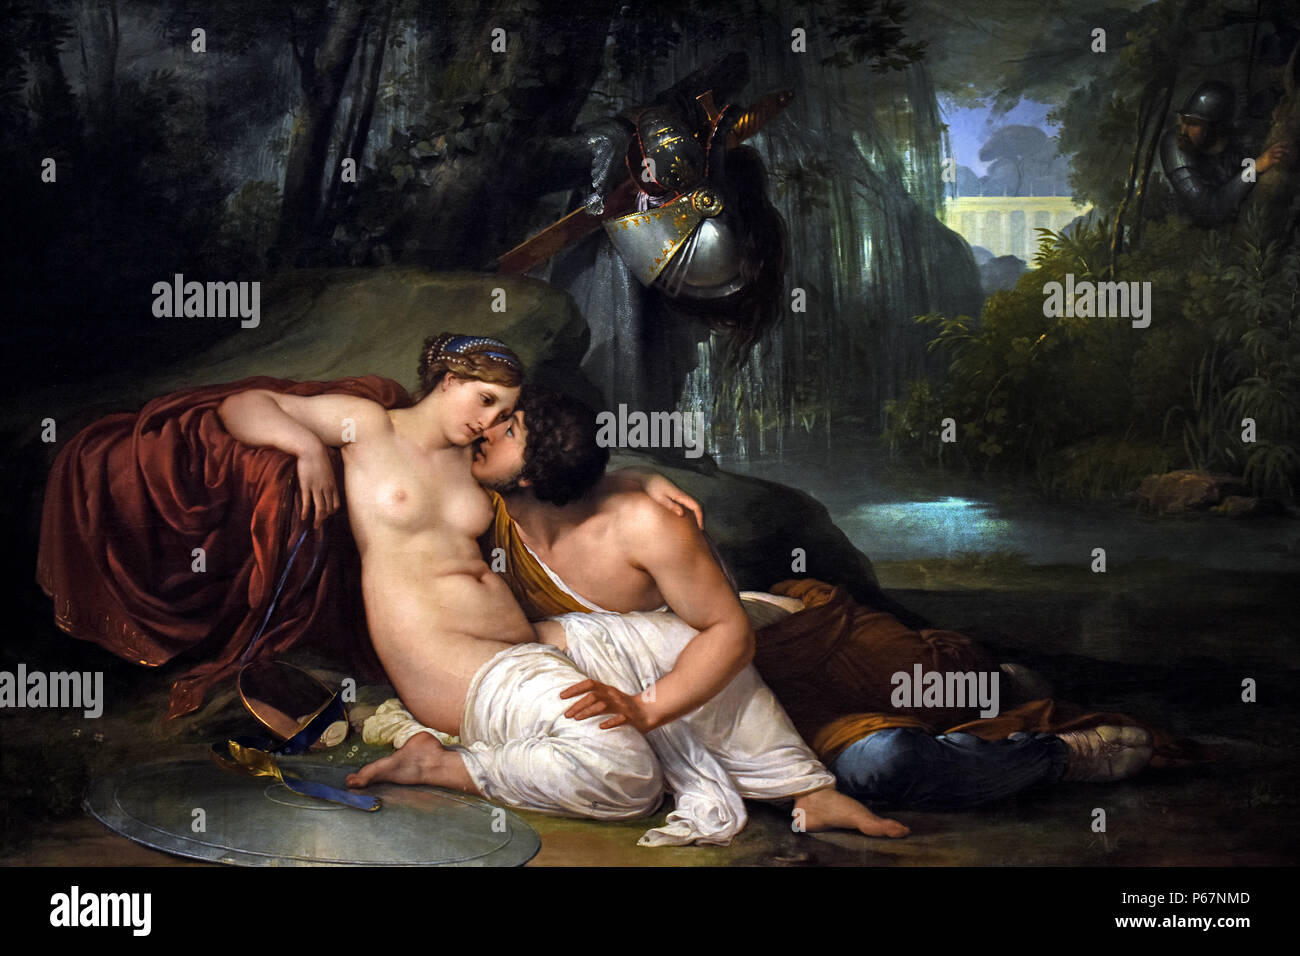 Rinaldo and Armida 1812  by Francesco Hayez  1791- 1882 Italy, Italian ( The story of Armida, a Saracen sorceress and Rinaldo, a soldier in the First Crusade, was created by the Italian poet Torquato Tasso. ) - Stock Image